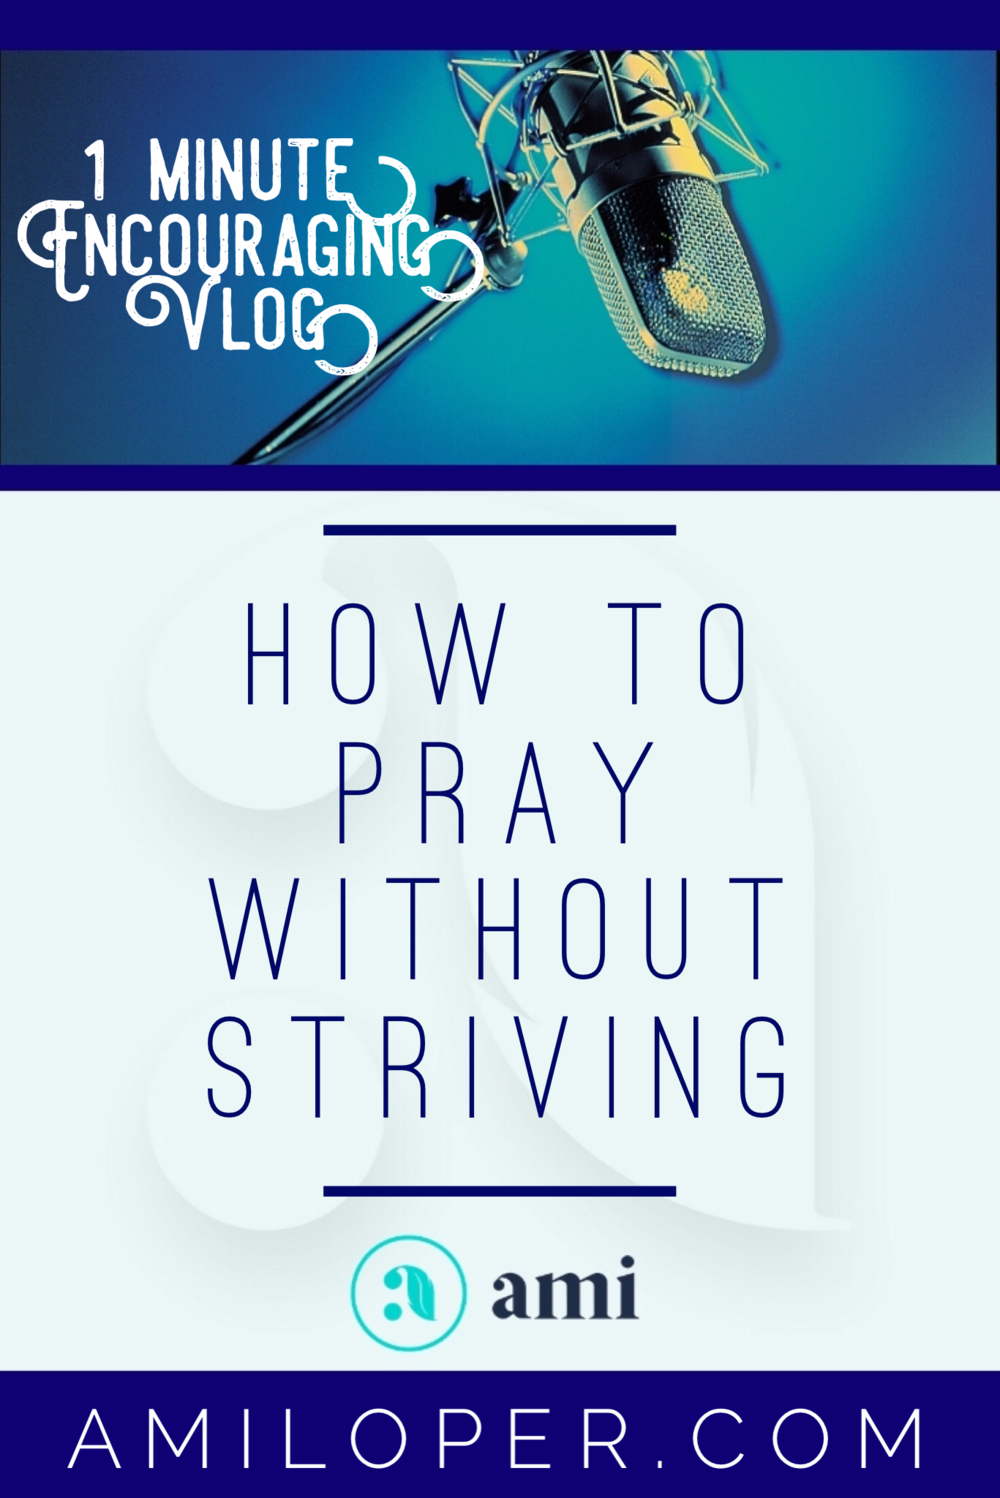 """It seems to me that there will always be something out of my reach. But sometimes my attitude implies I think I have to persuade God to come through! Recently He told me, """"Ami, this is not a tug of war! We're on the same side!"""" #Prayer #Prayers #Vlog"""